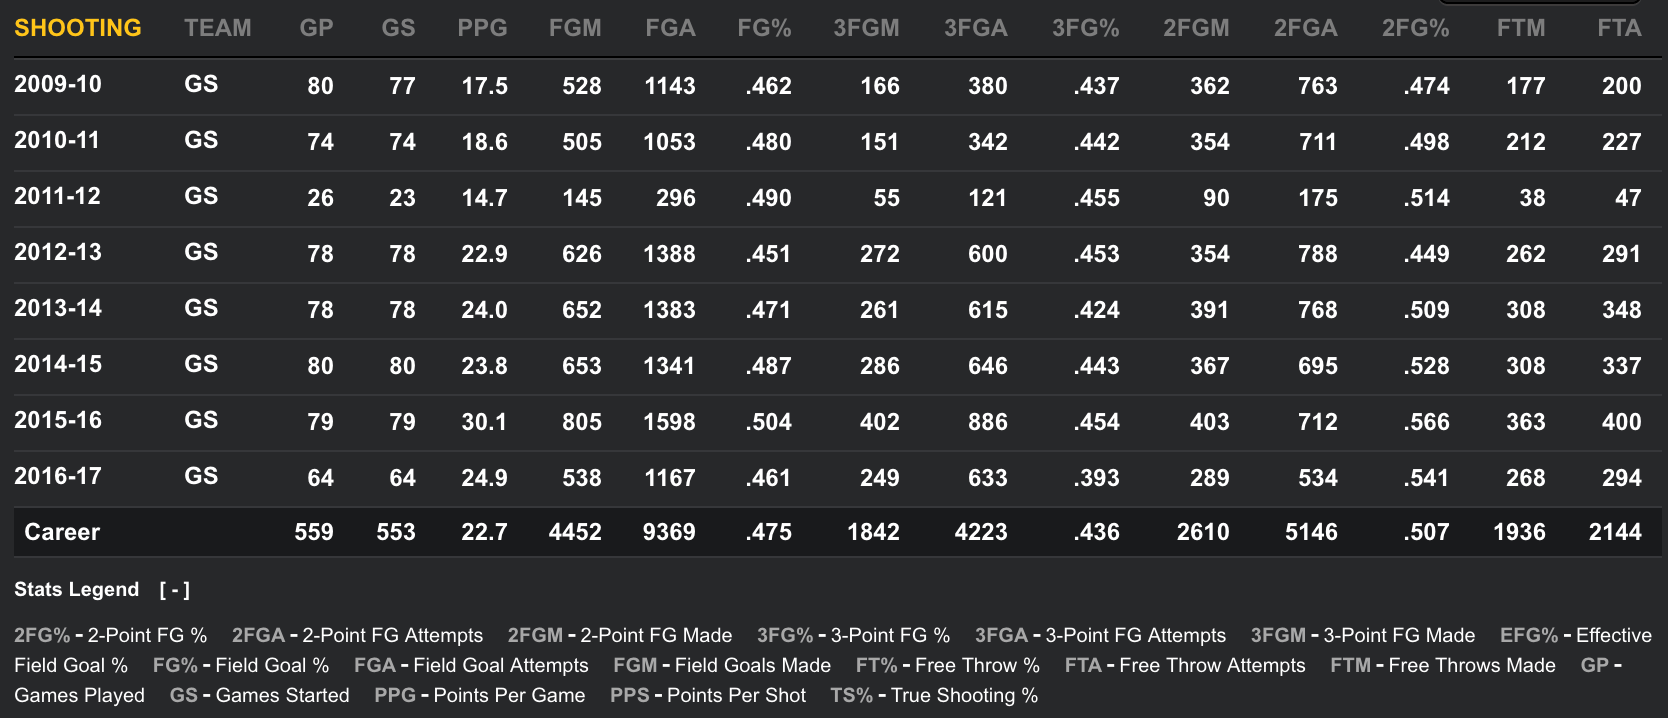 Stephen Curry Shooting Stats